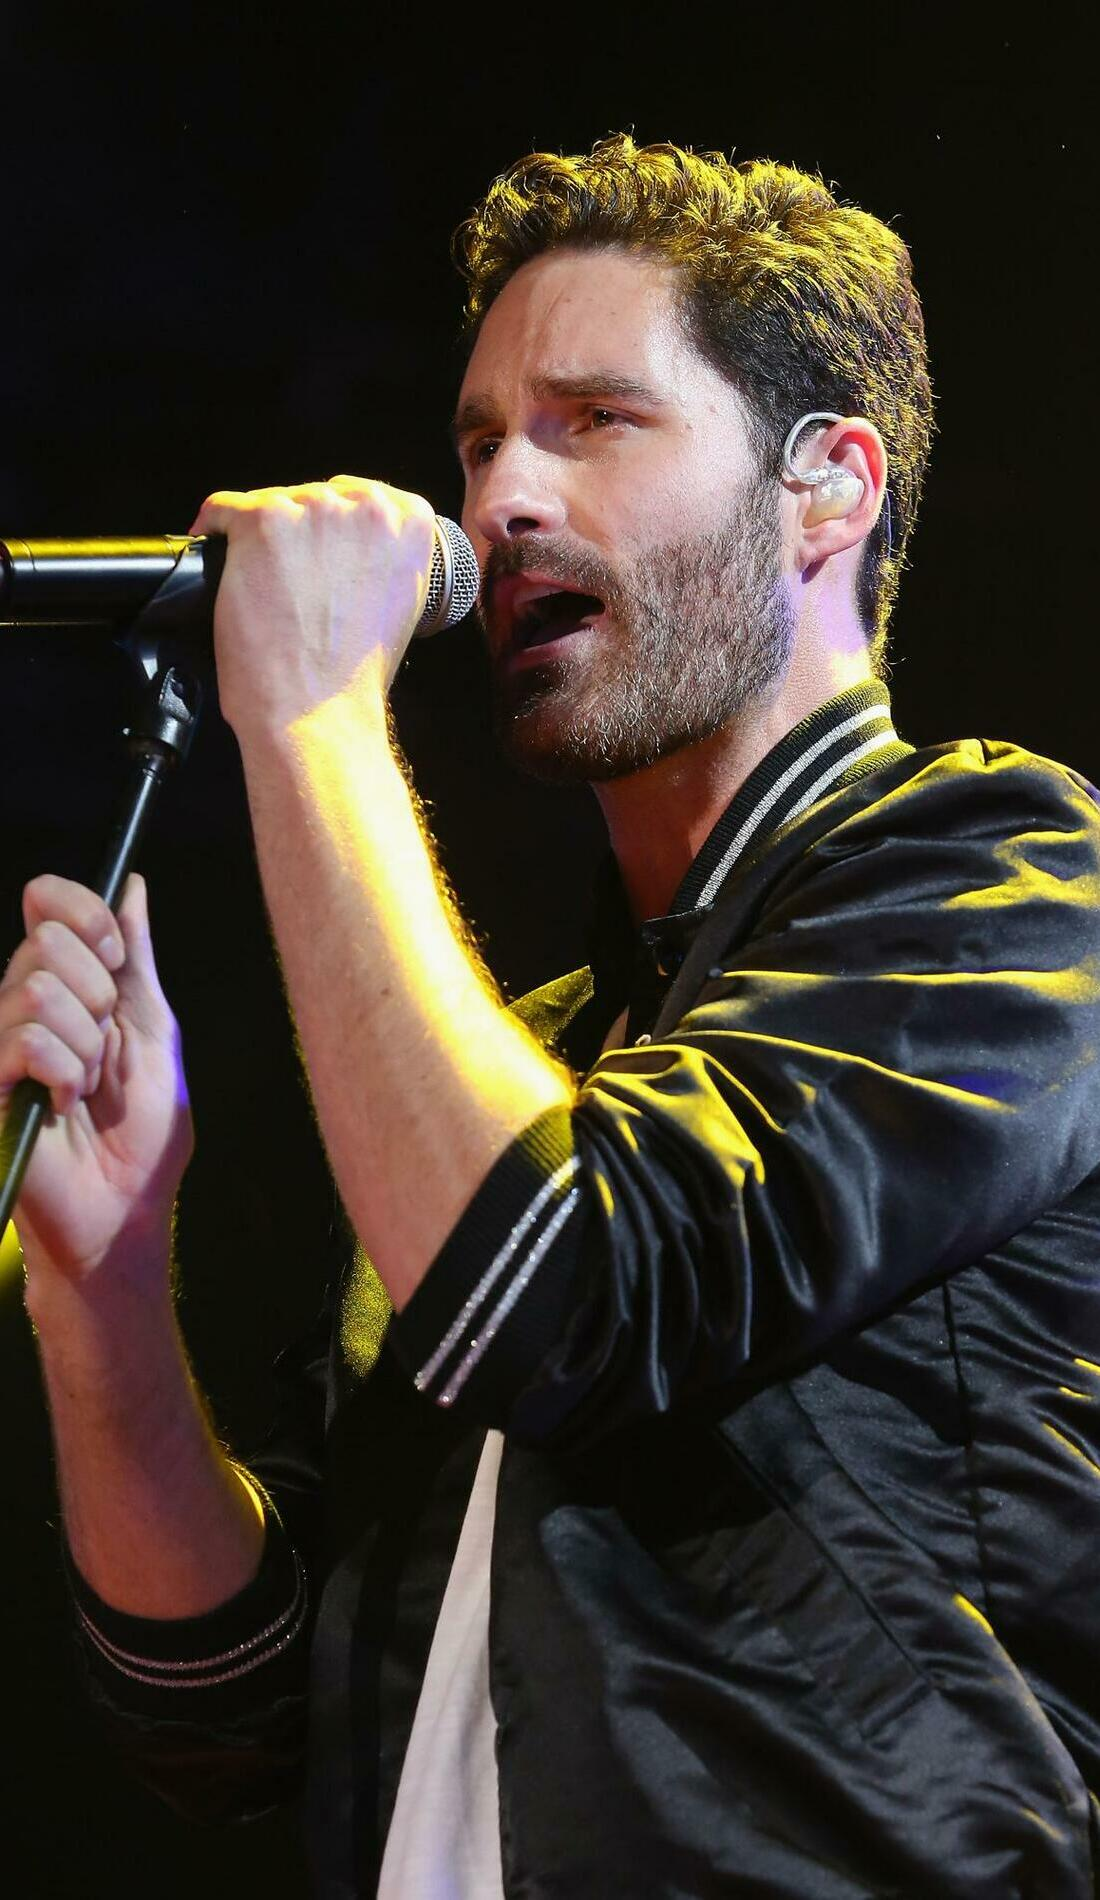 A Capital Cities live event